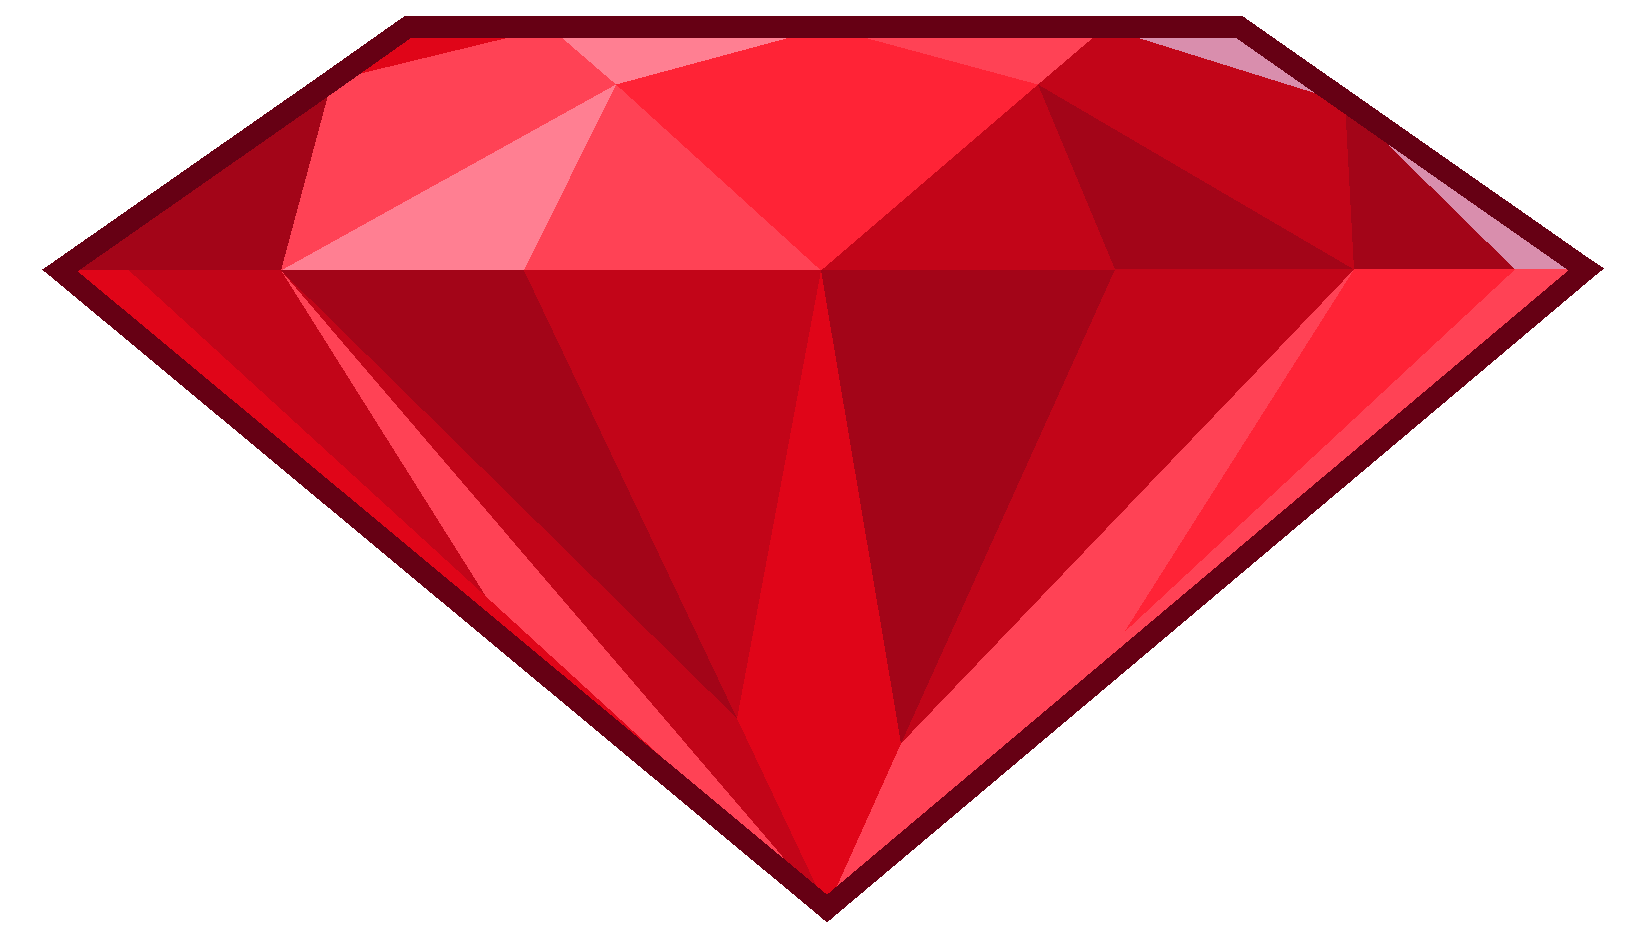 1628x929 Ruby Clipart Ruby Stone